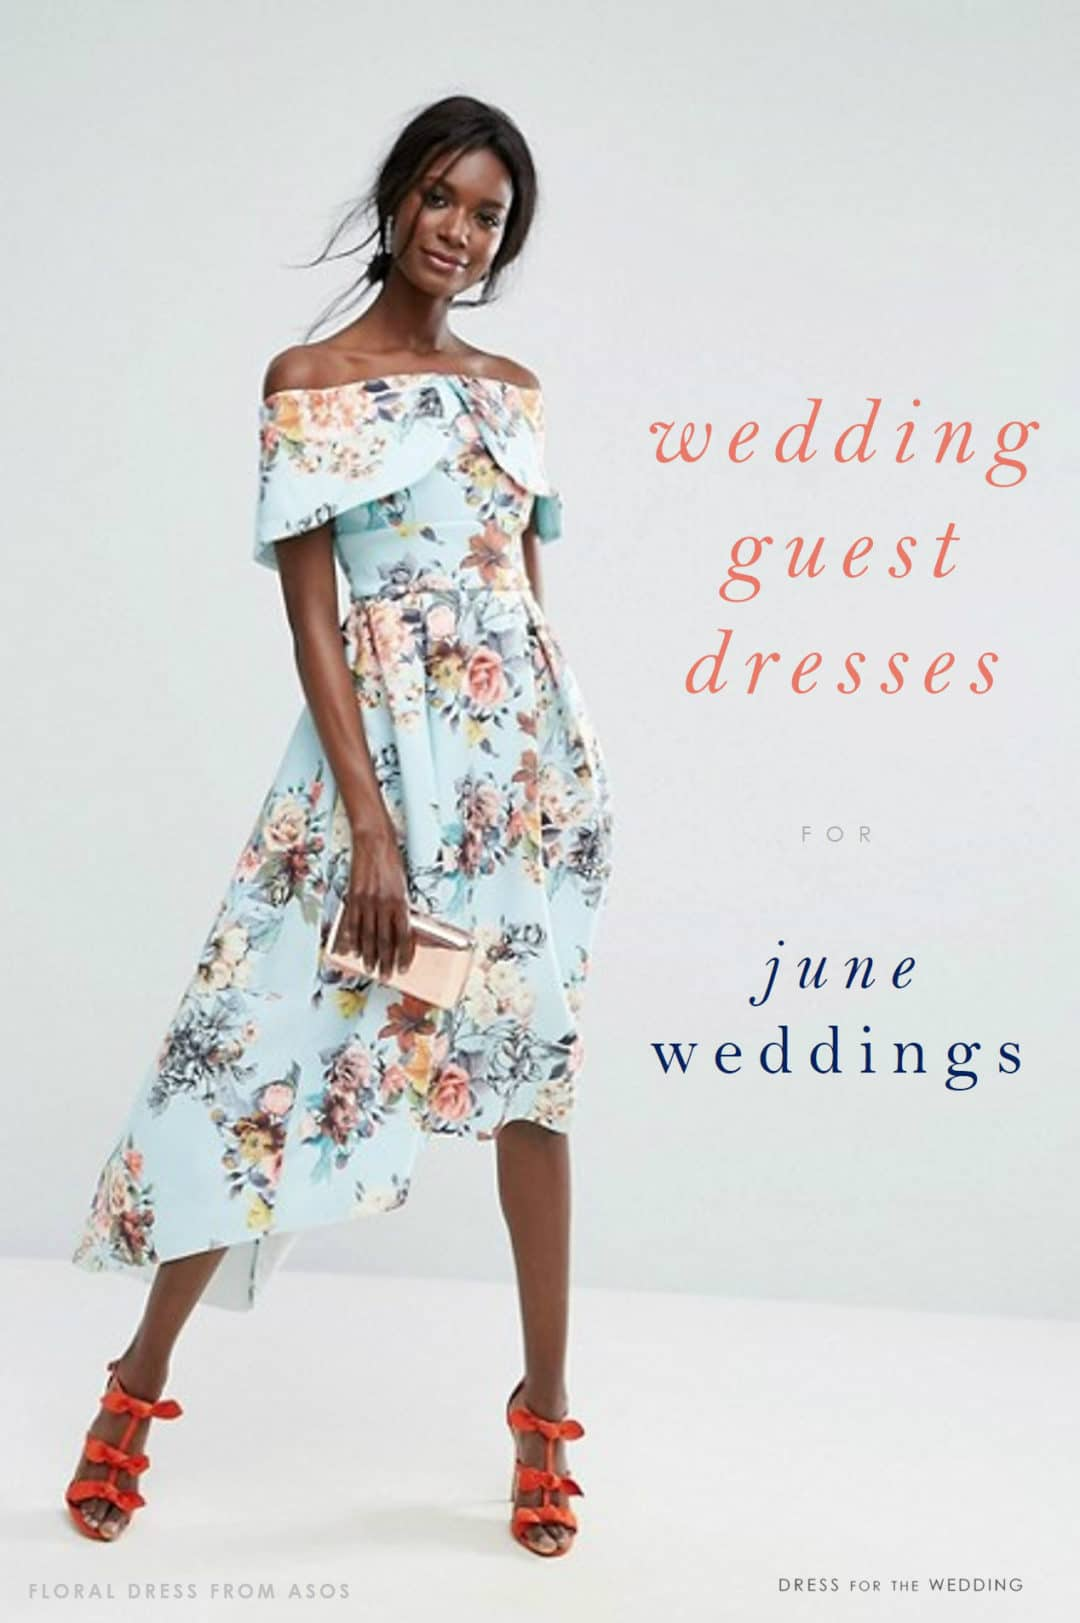 20 on trend dresses for june 2017 wedding guests dress for Dressing for wedding guests